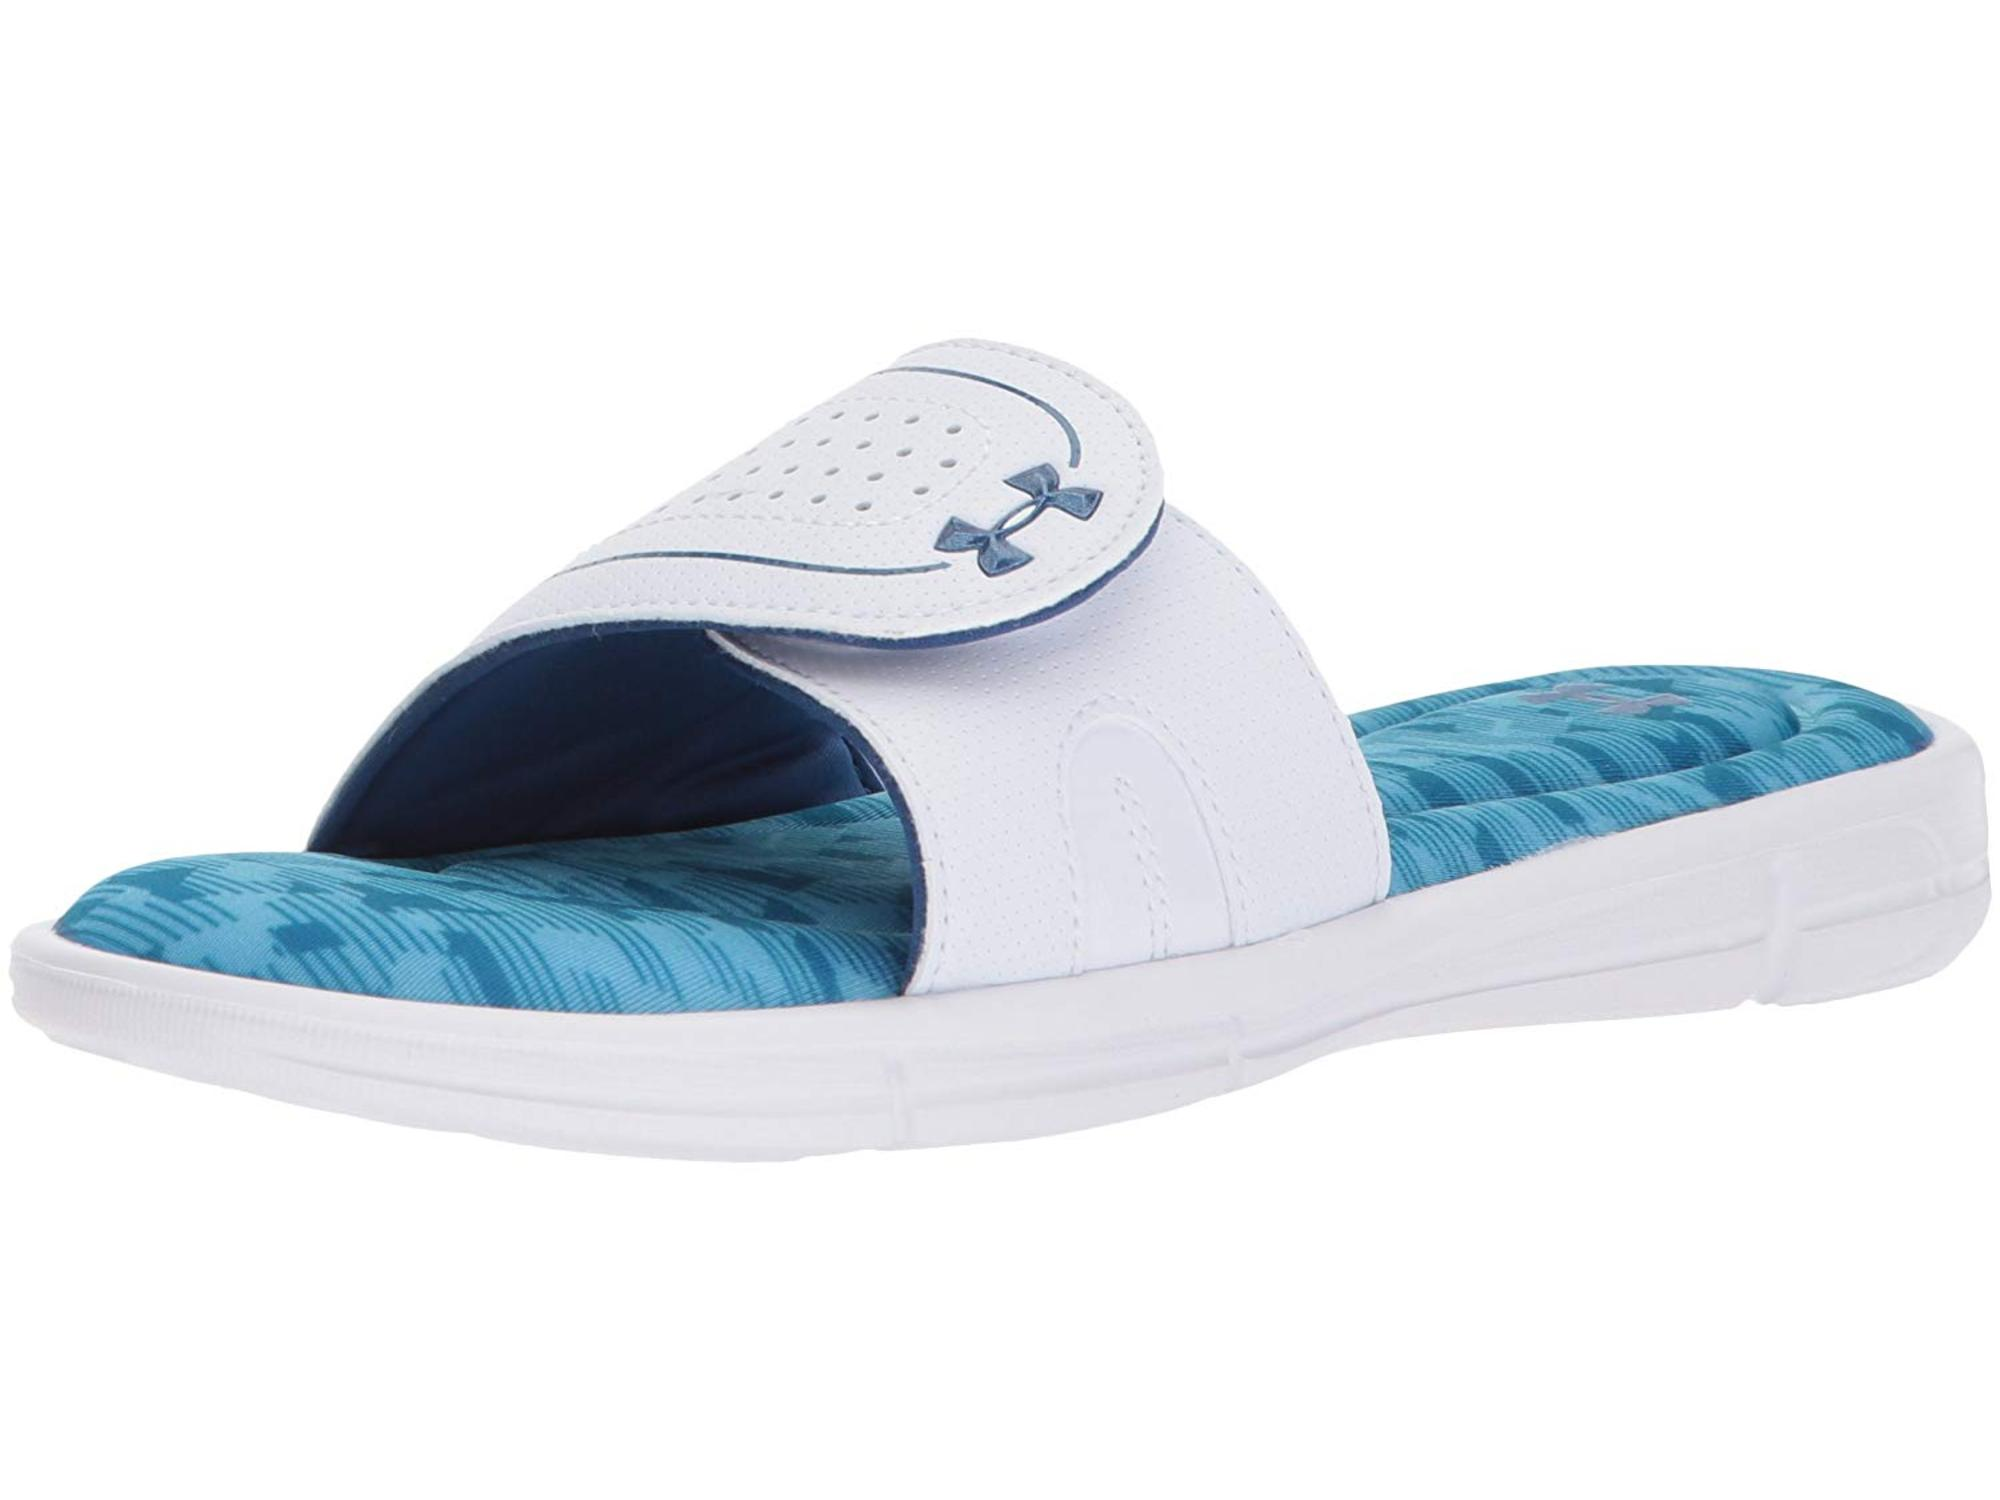 aac81d630aa Under Armour Women s Ignite VIII Edge Slide Sandal